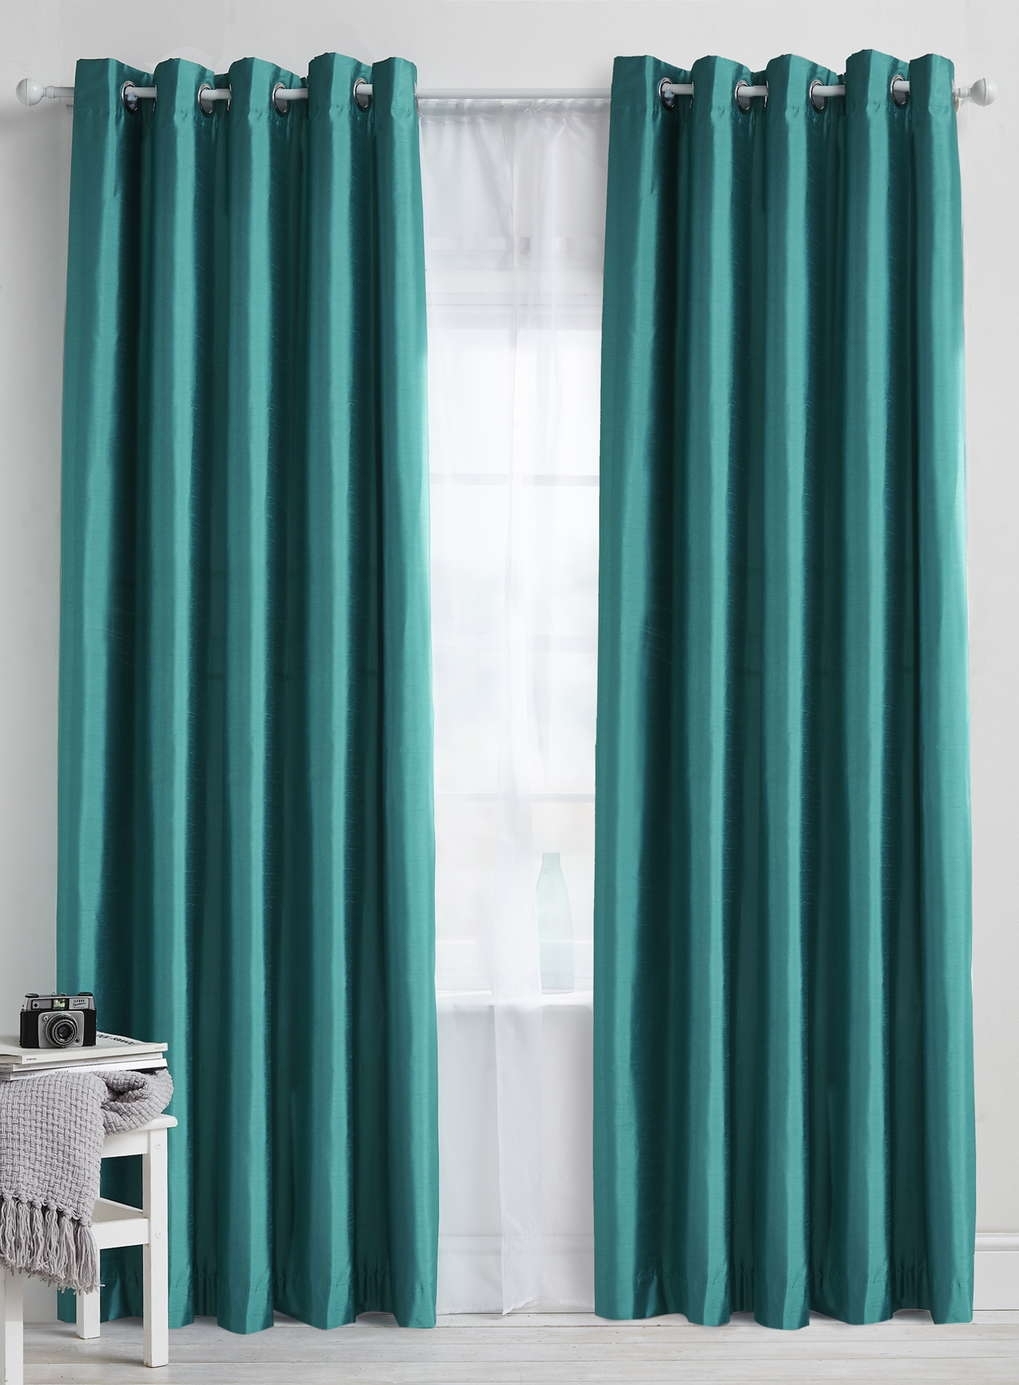 Teal Plain Faux Silk Blackoutthermal Eyelet Curtain Bhs Regarding Thermal And Blackout Curtains (Image 13 of 15)